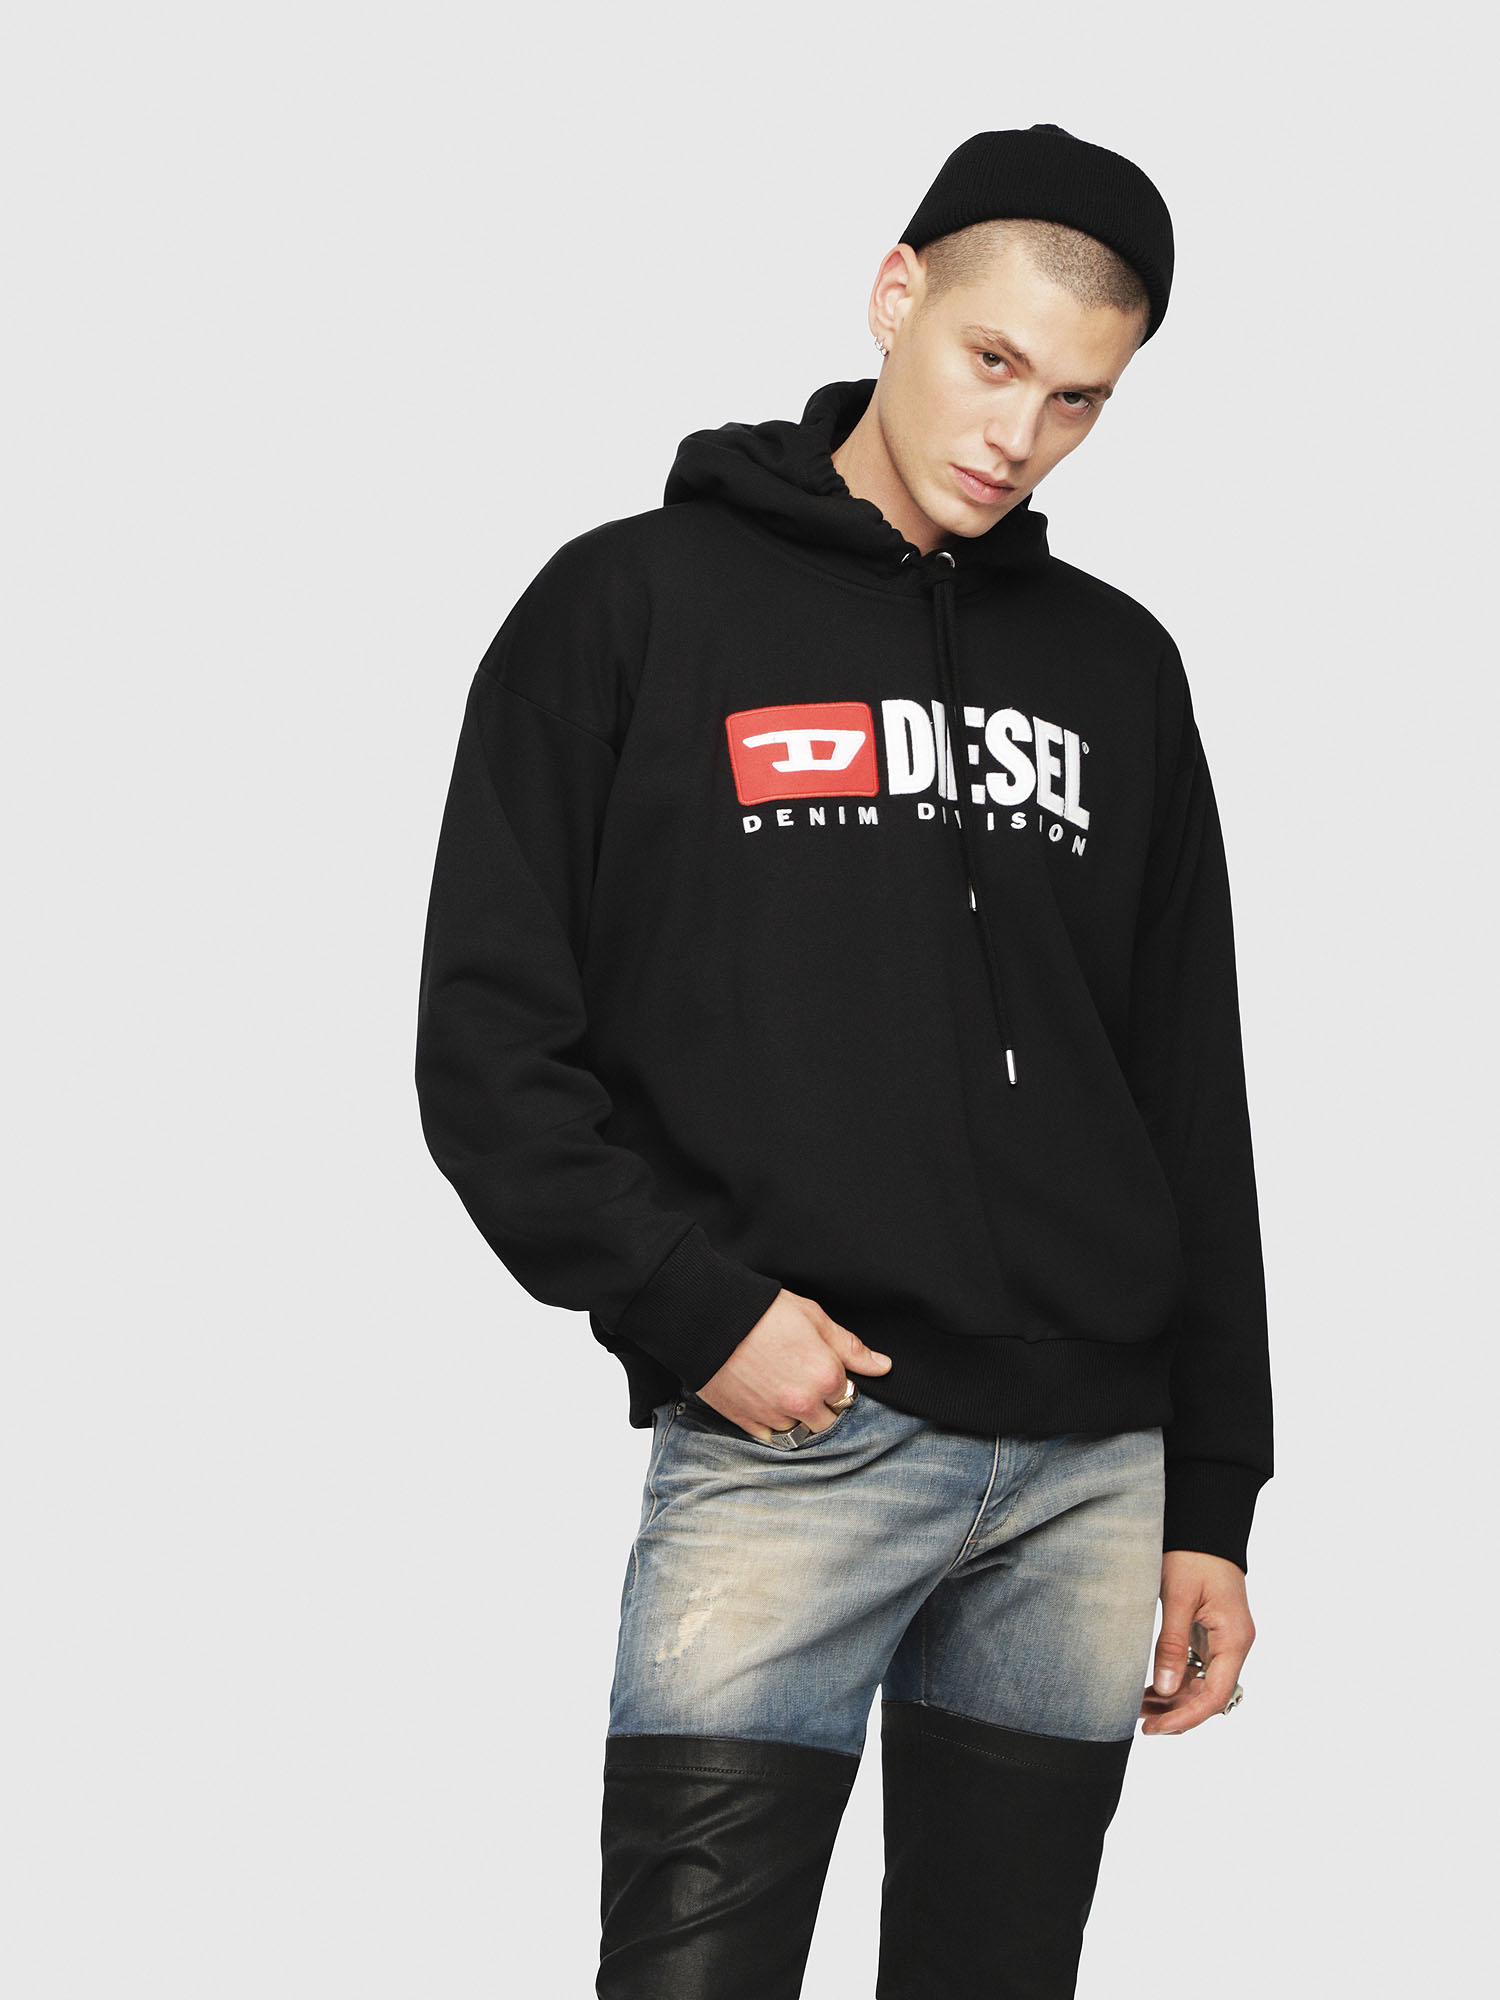 Diesel - S-DIVISION,  - Sweaters - Image 1